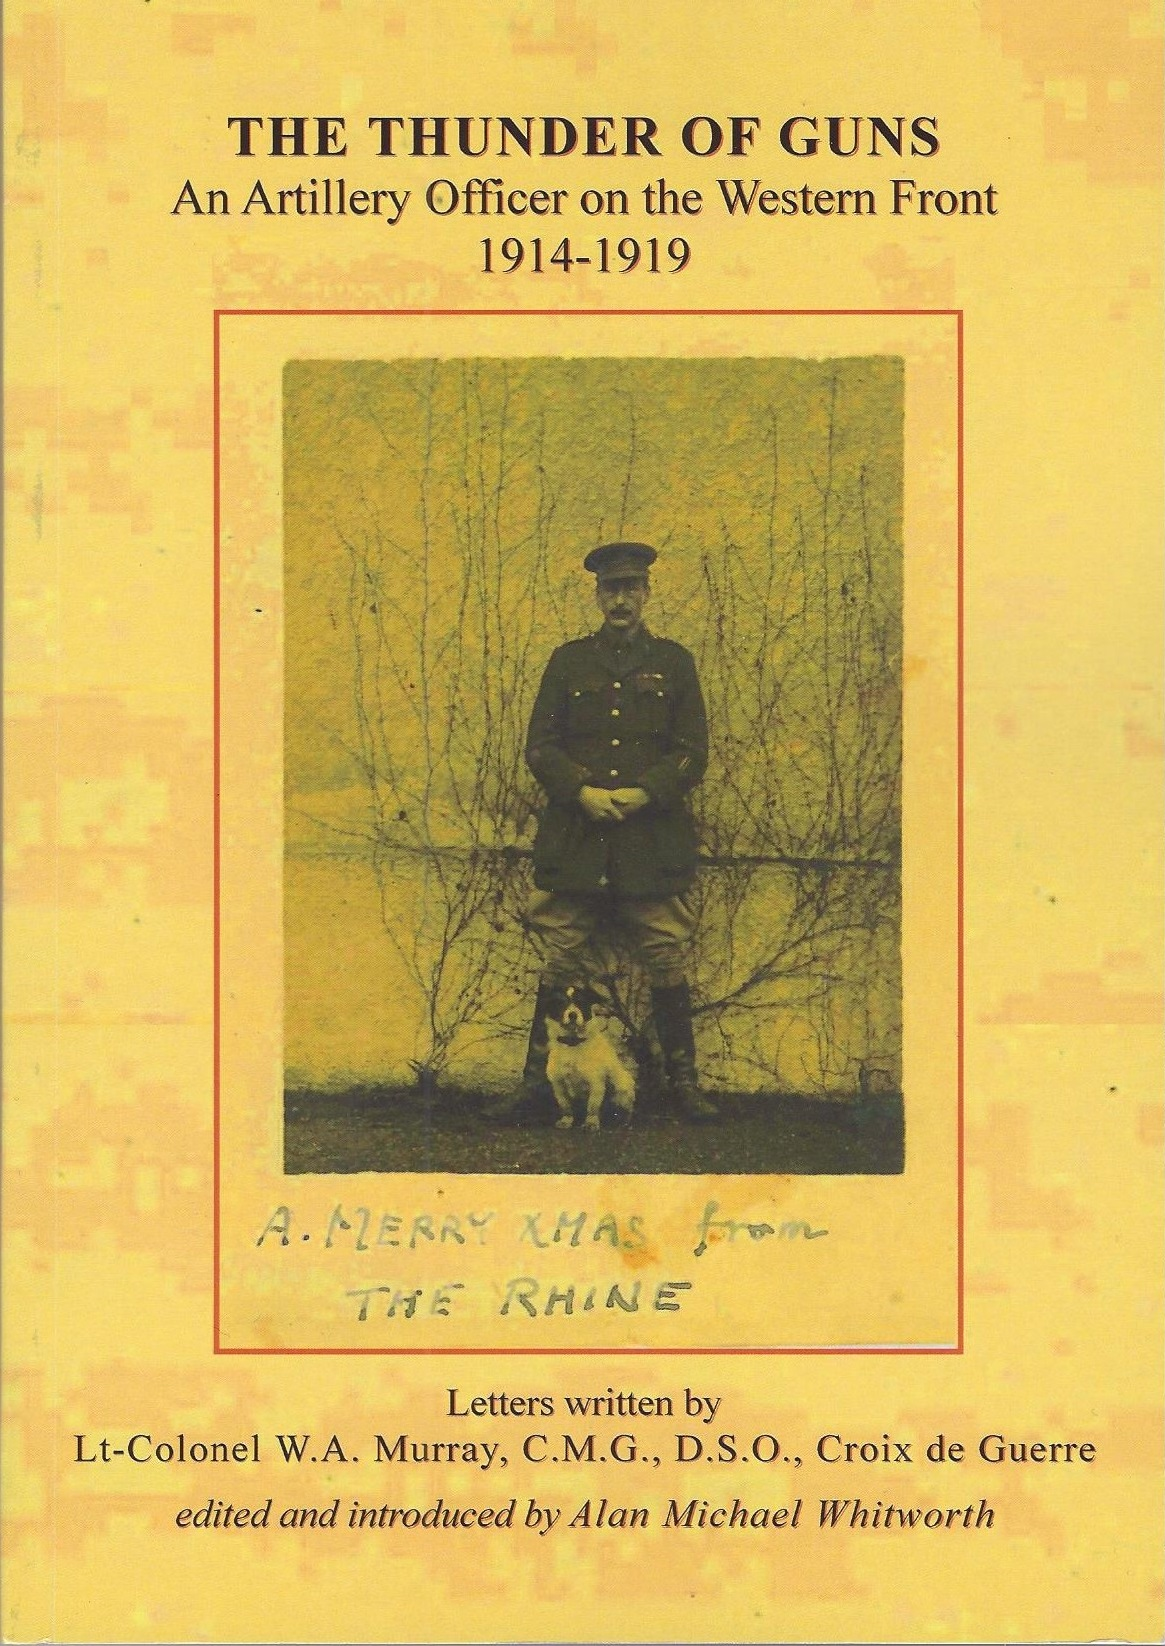 The Thunder of Guns: An Artillery Officer on the Western Front 1914-1919